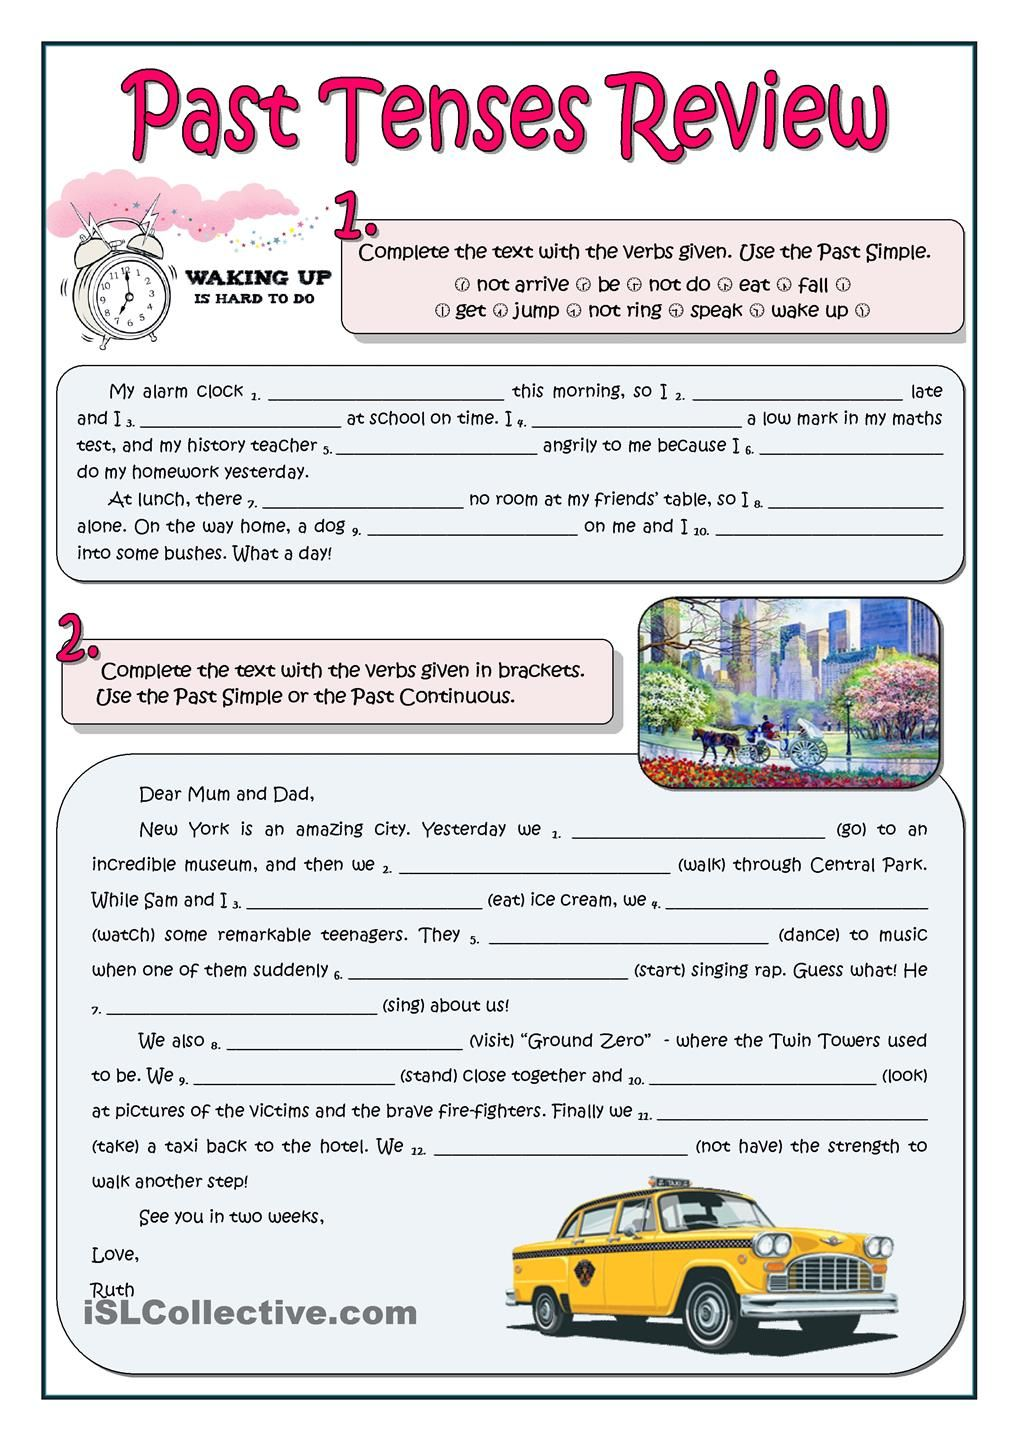 PAST TENSES REVIEW | ESL | Pinterest | English, English grammar and ...